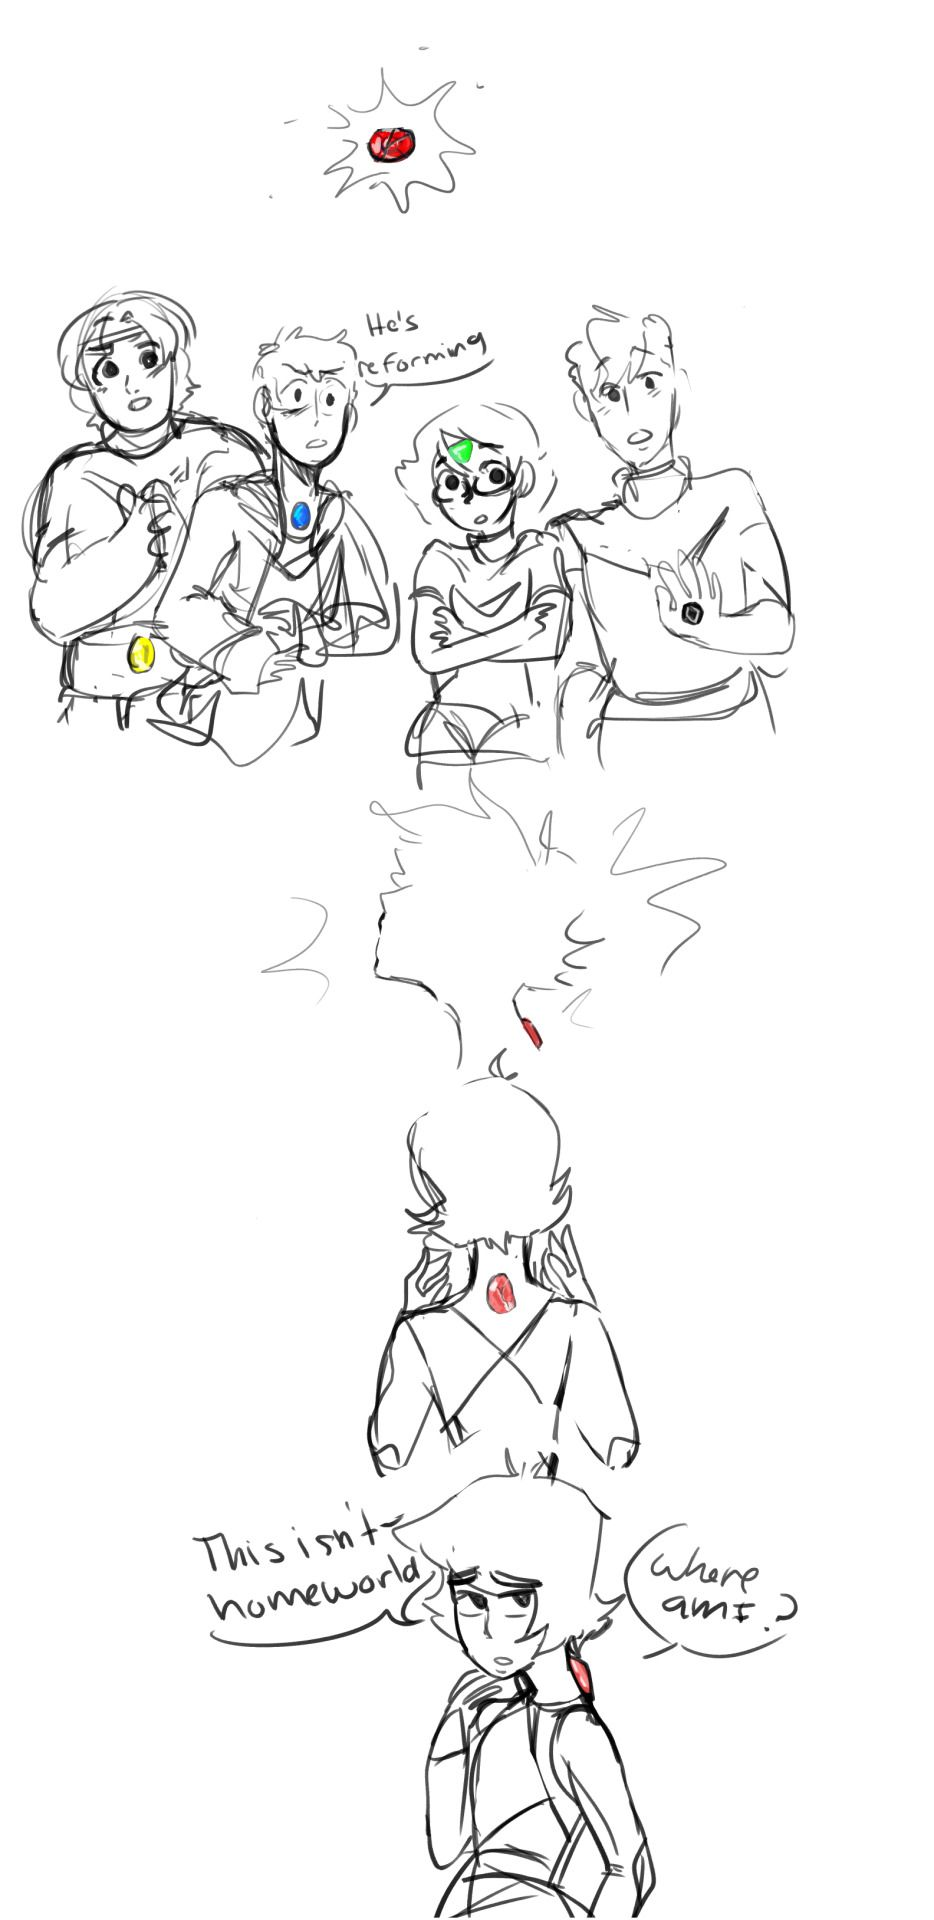 so i finally fleshed out my voltron su au here's a quick